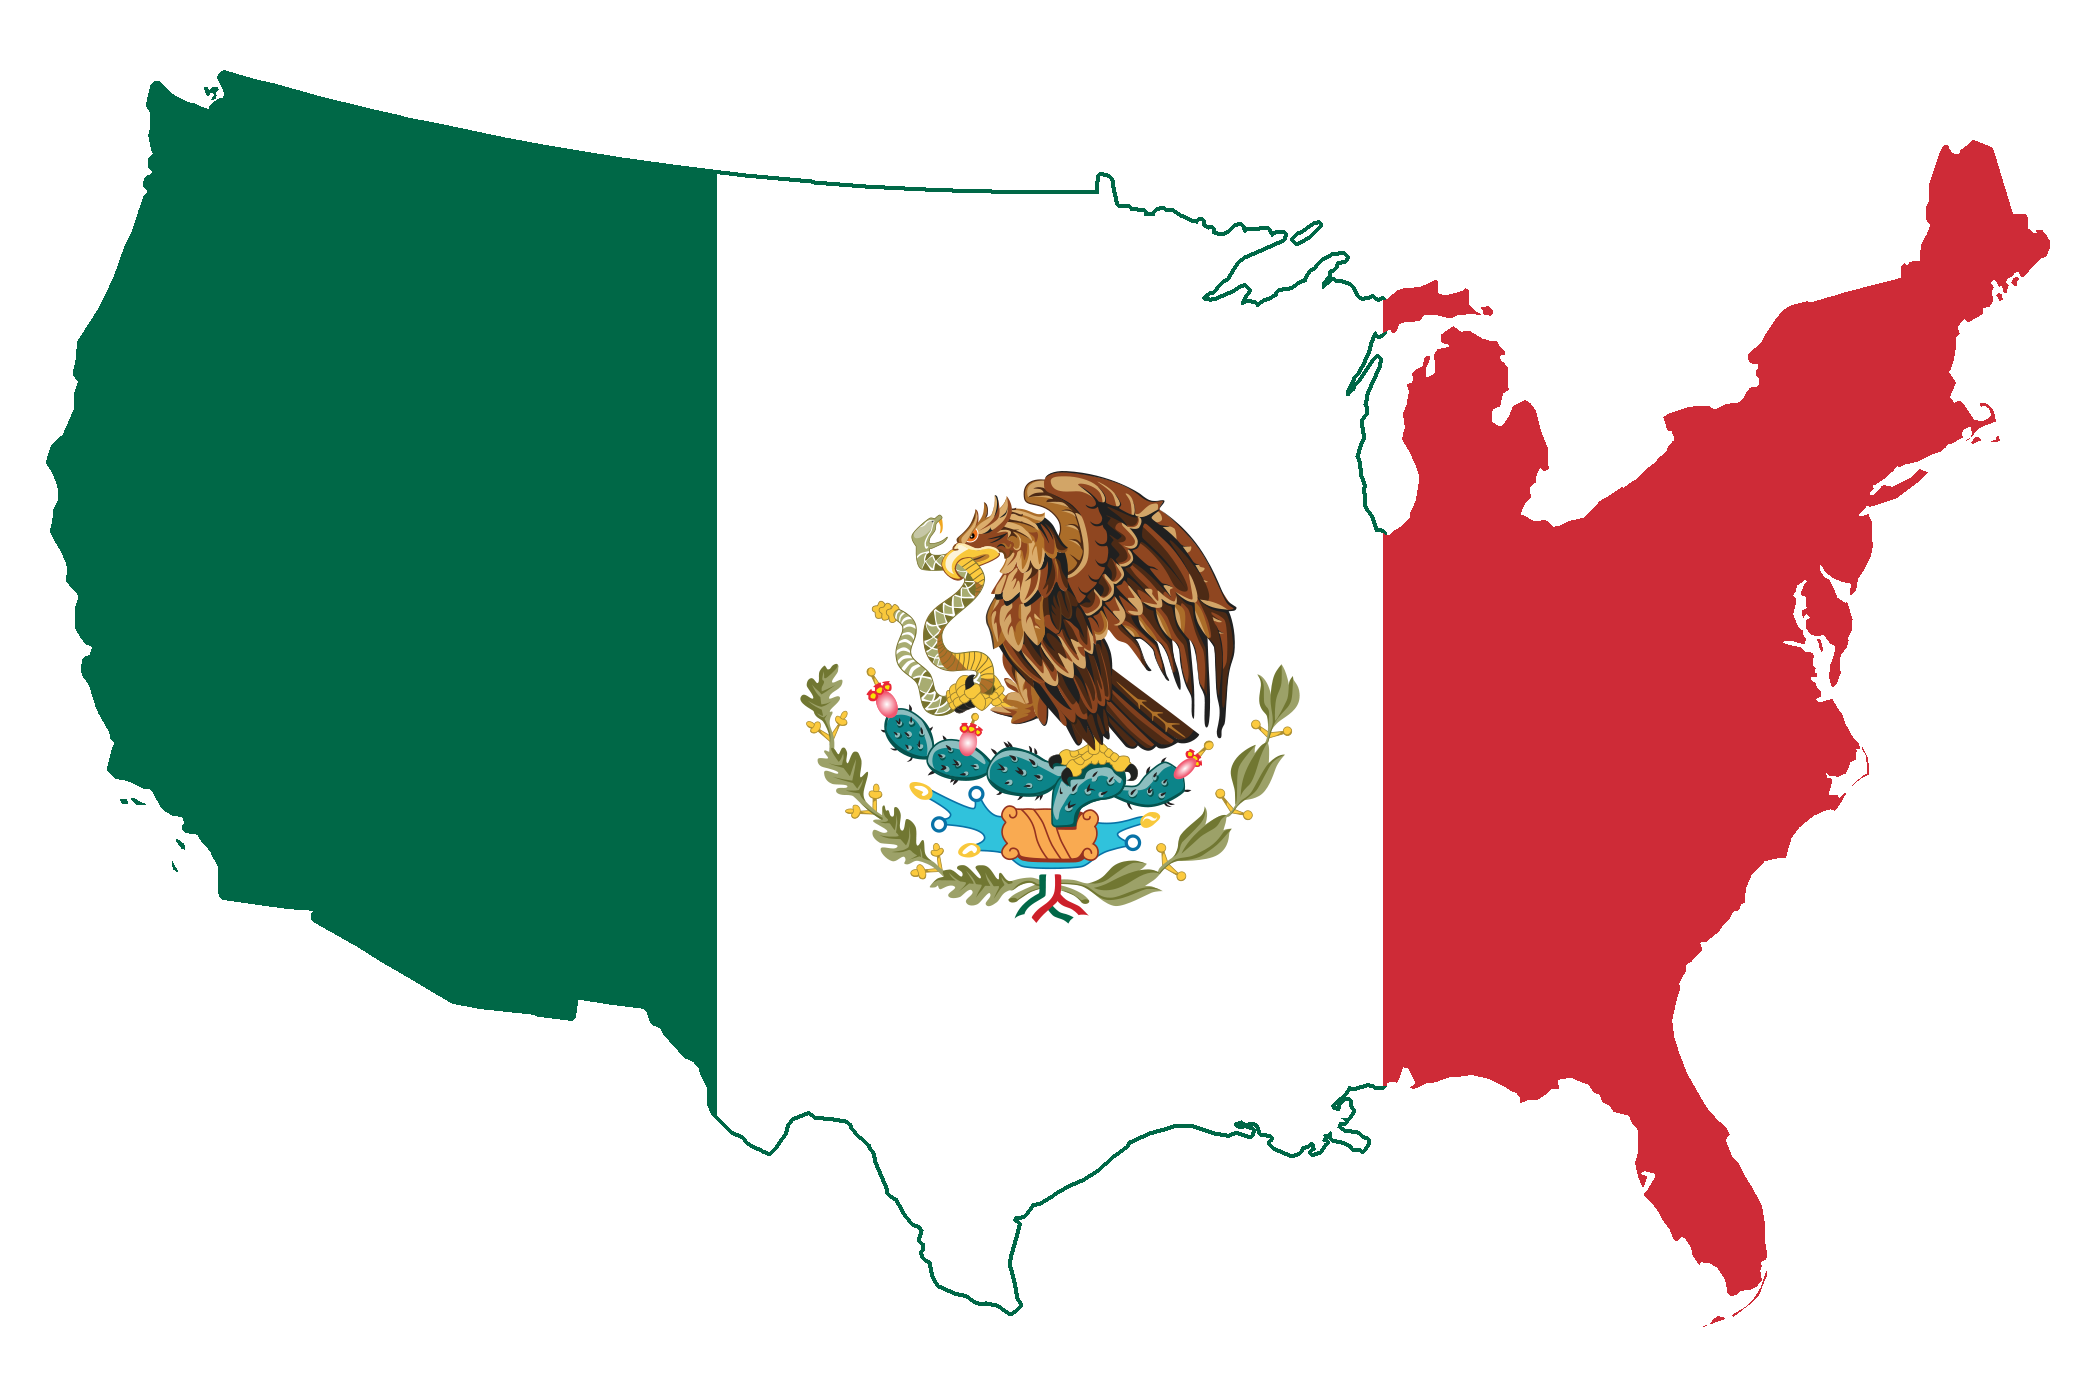 File:Flag Map of the United States (Mexico).png - Wikimedia Commons